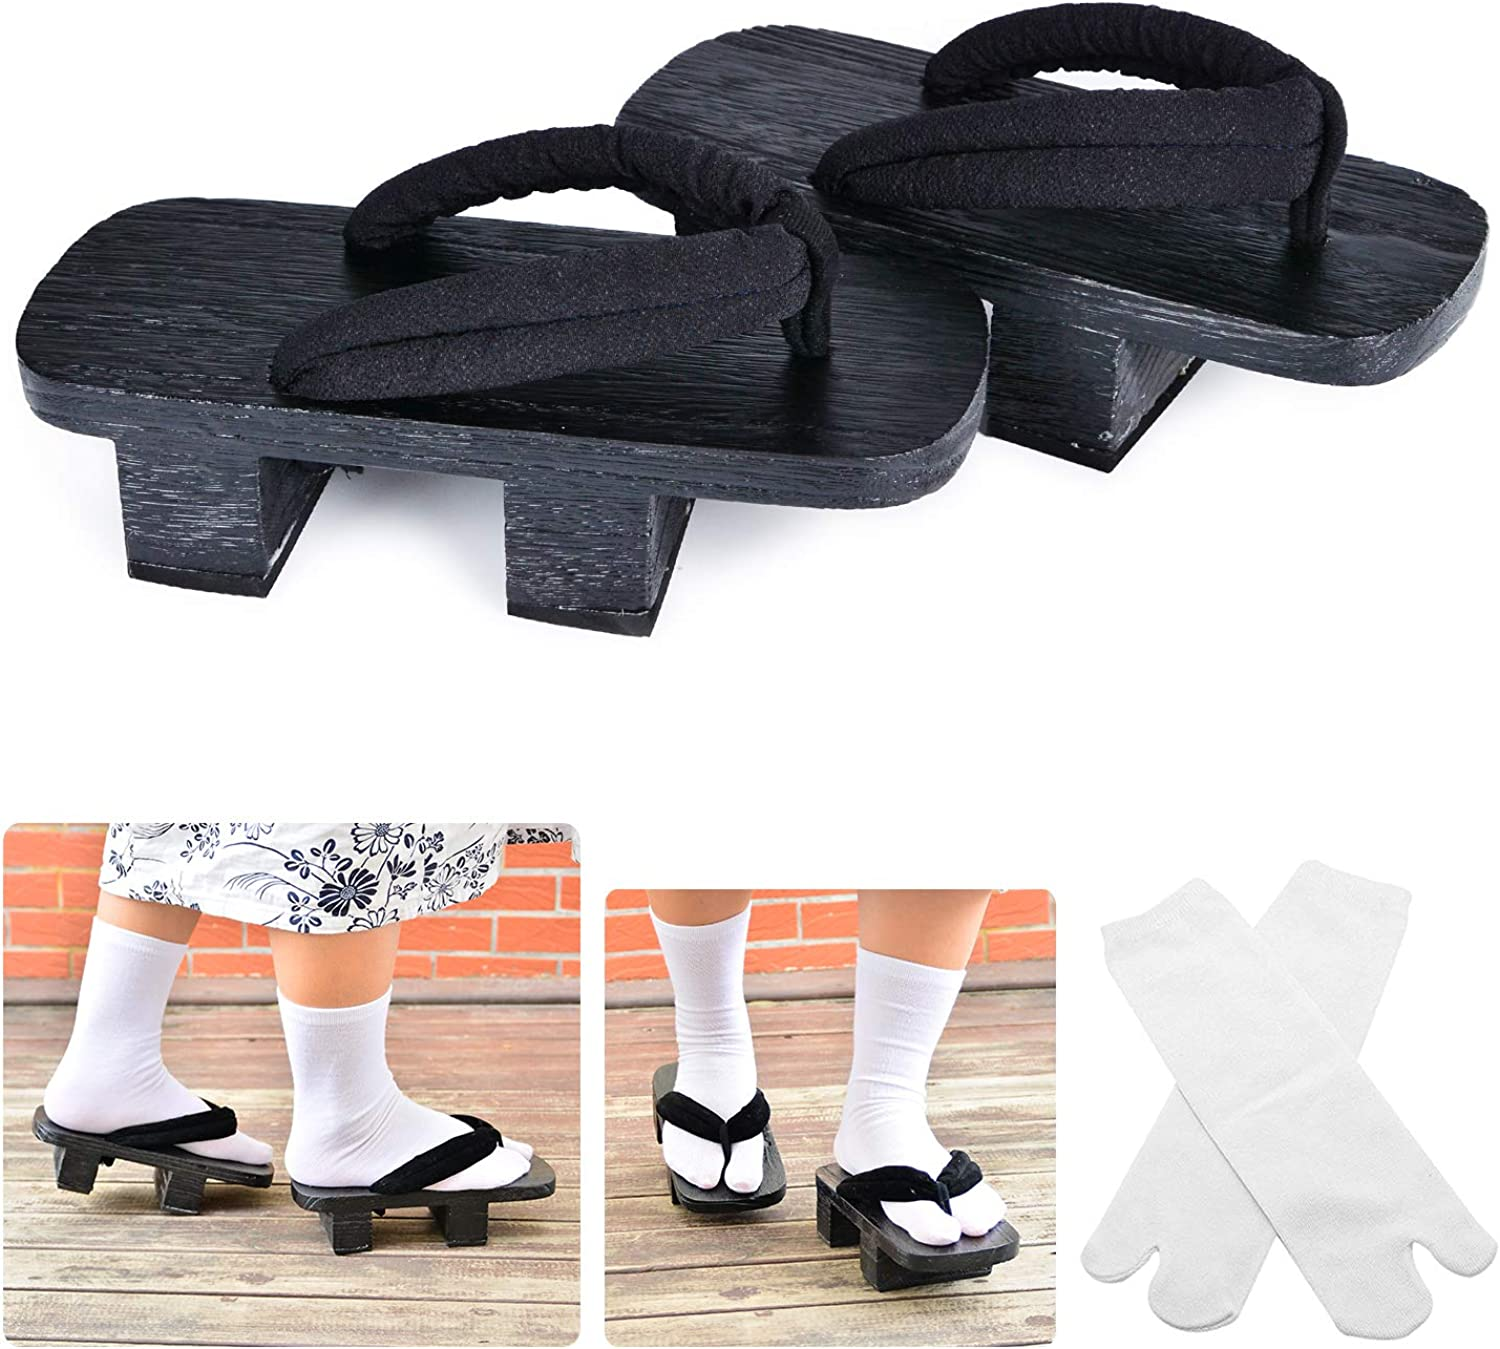 Japanese Wooden Clogs Sandals Japan Traditional Shoes Geta with Tabi Socks